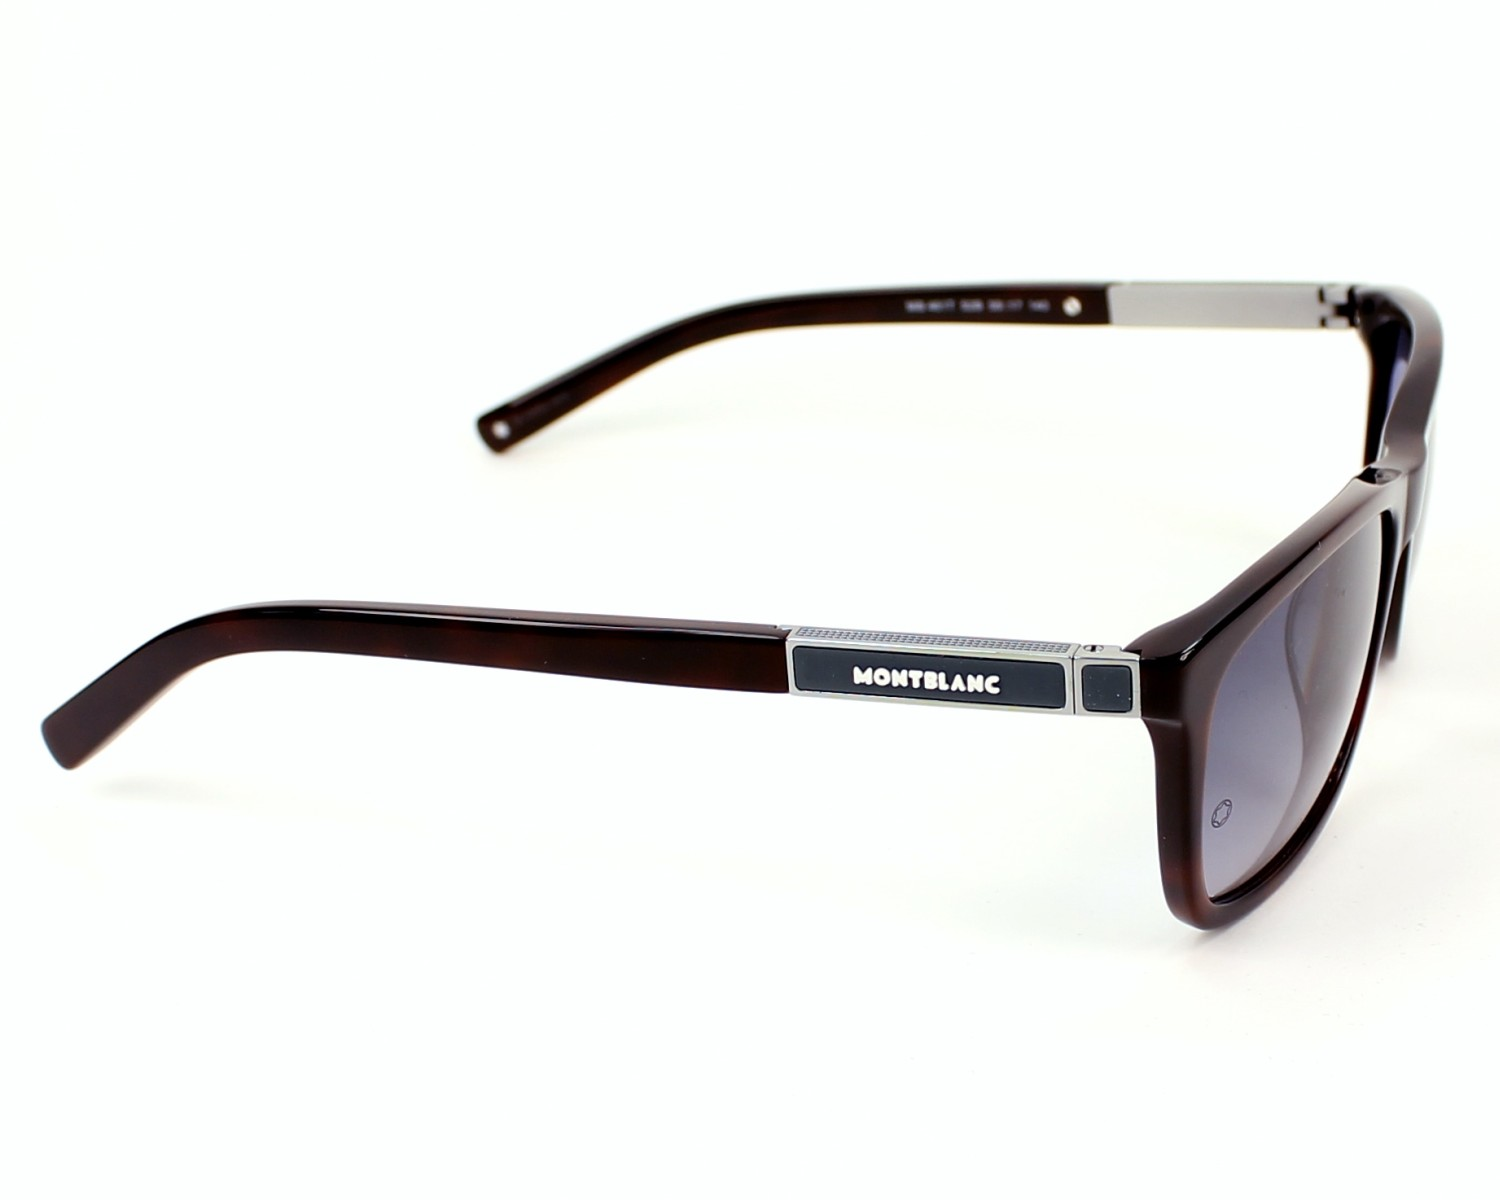 bbd7b45cf82 Sunglasses Mont Blanc MB-461-T 52B 58-17 Havana side view